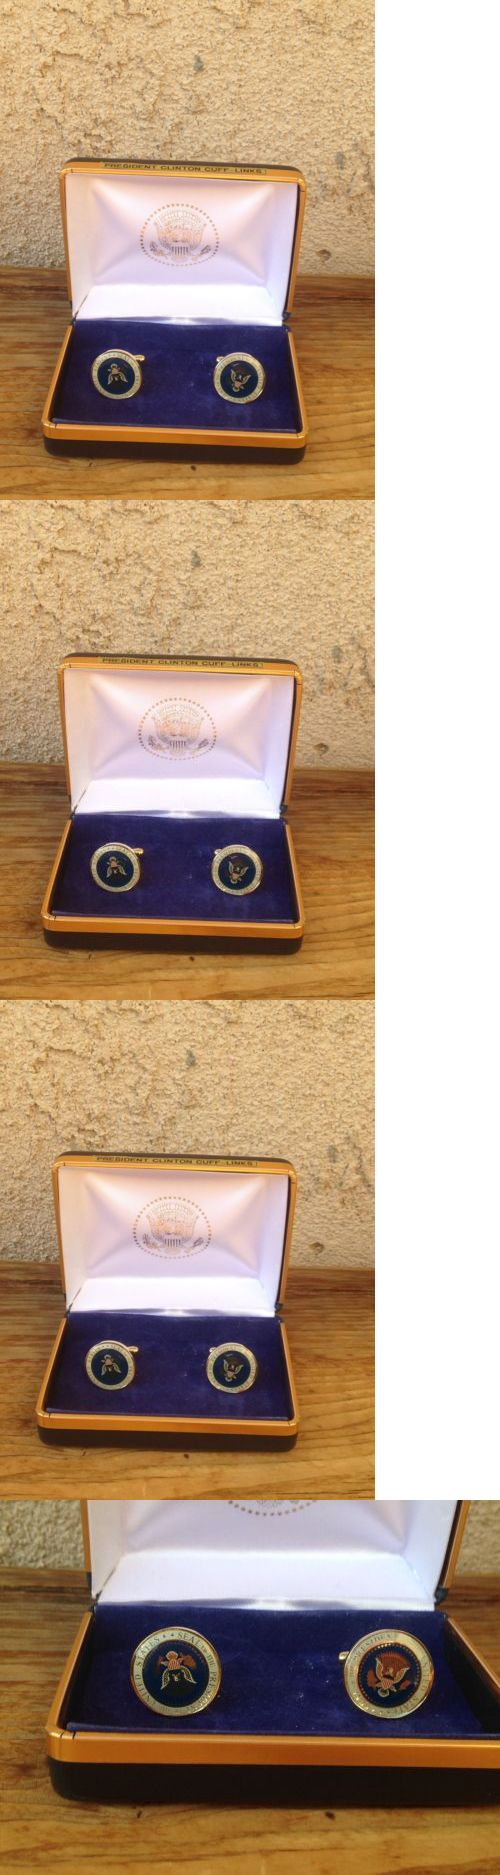 Bill Clinton: New Bill Clinton Presidential Seal Color Cufflinks -> BUY IT NOW ONLY: $29.99 on eBay!